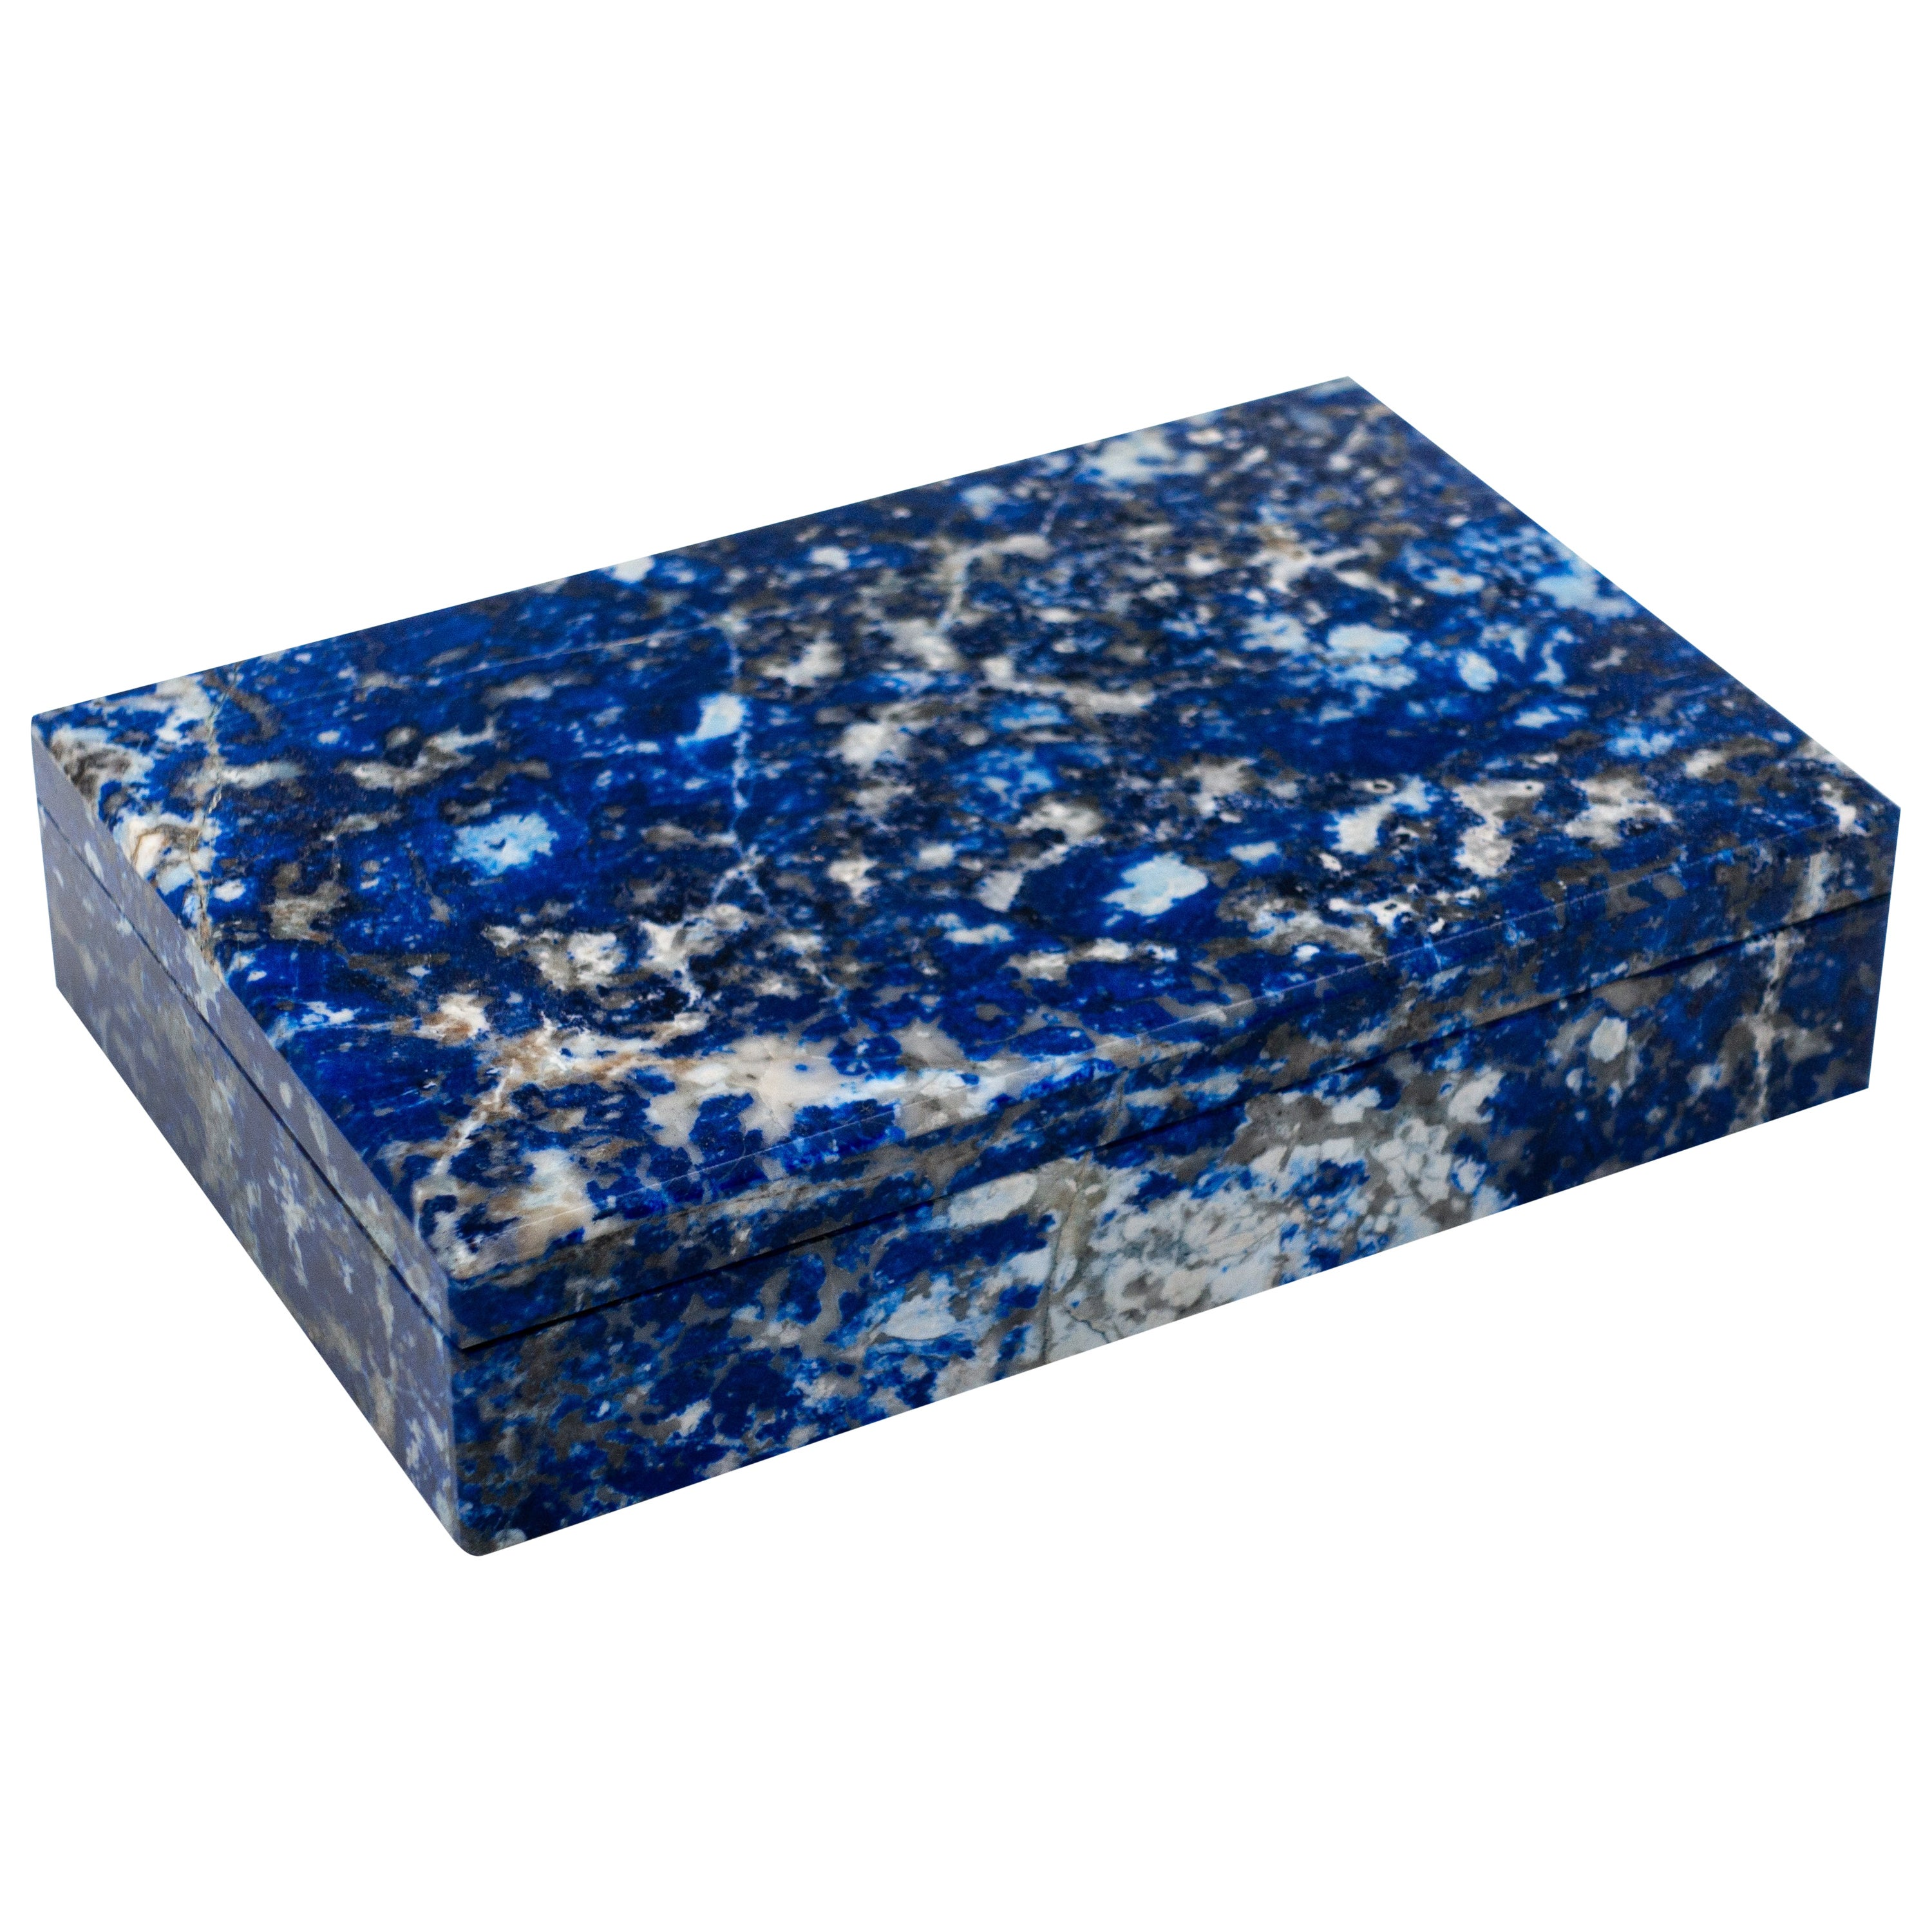 Sodalite Box with Hinged Lid